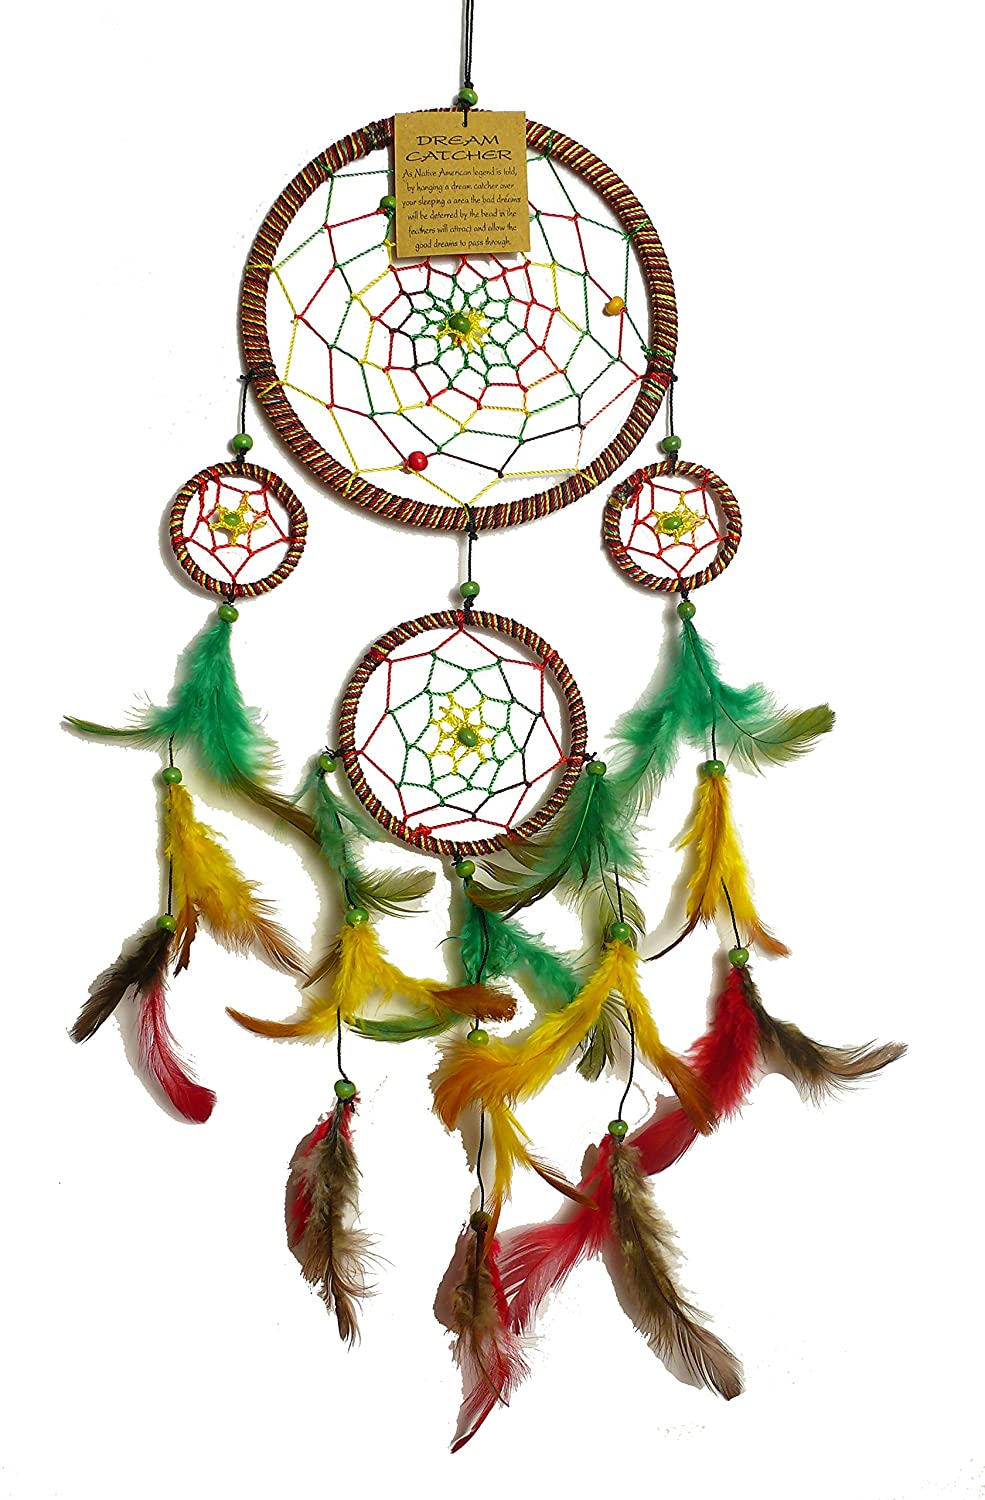 Dream Catcher, Dreamcatcher Jamaica Good Dream, 13 Centimeter Diameter, Yellow, Green, Red vendo